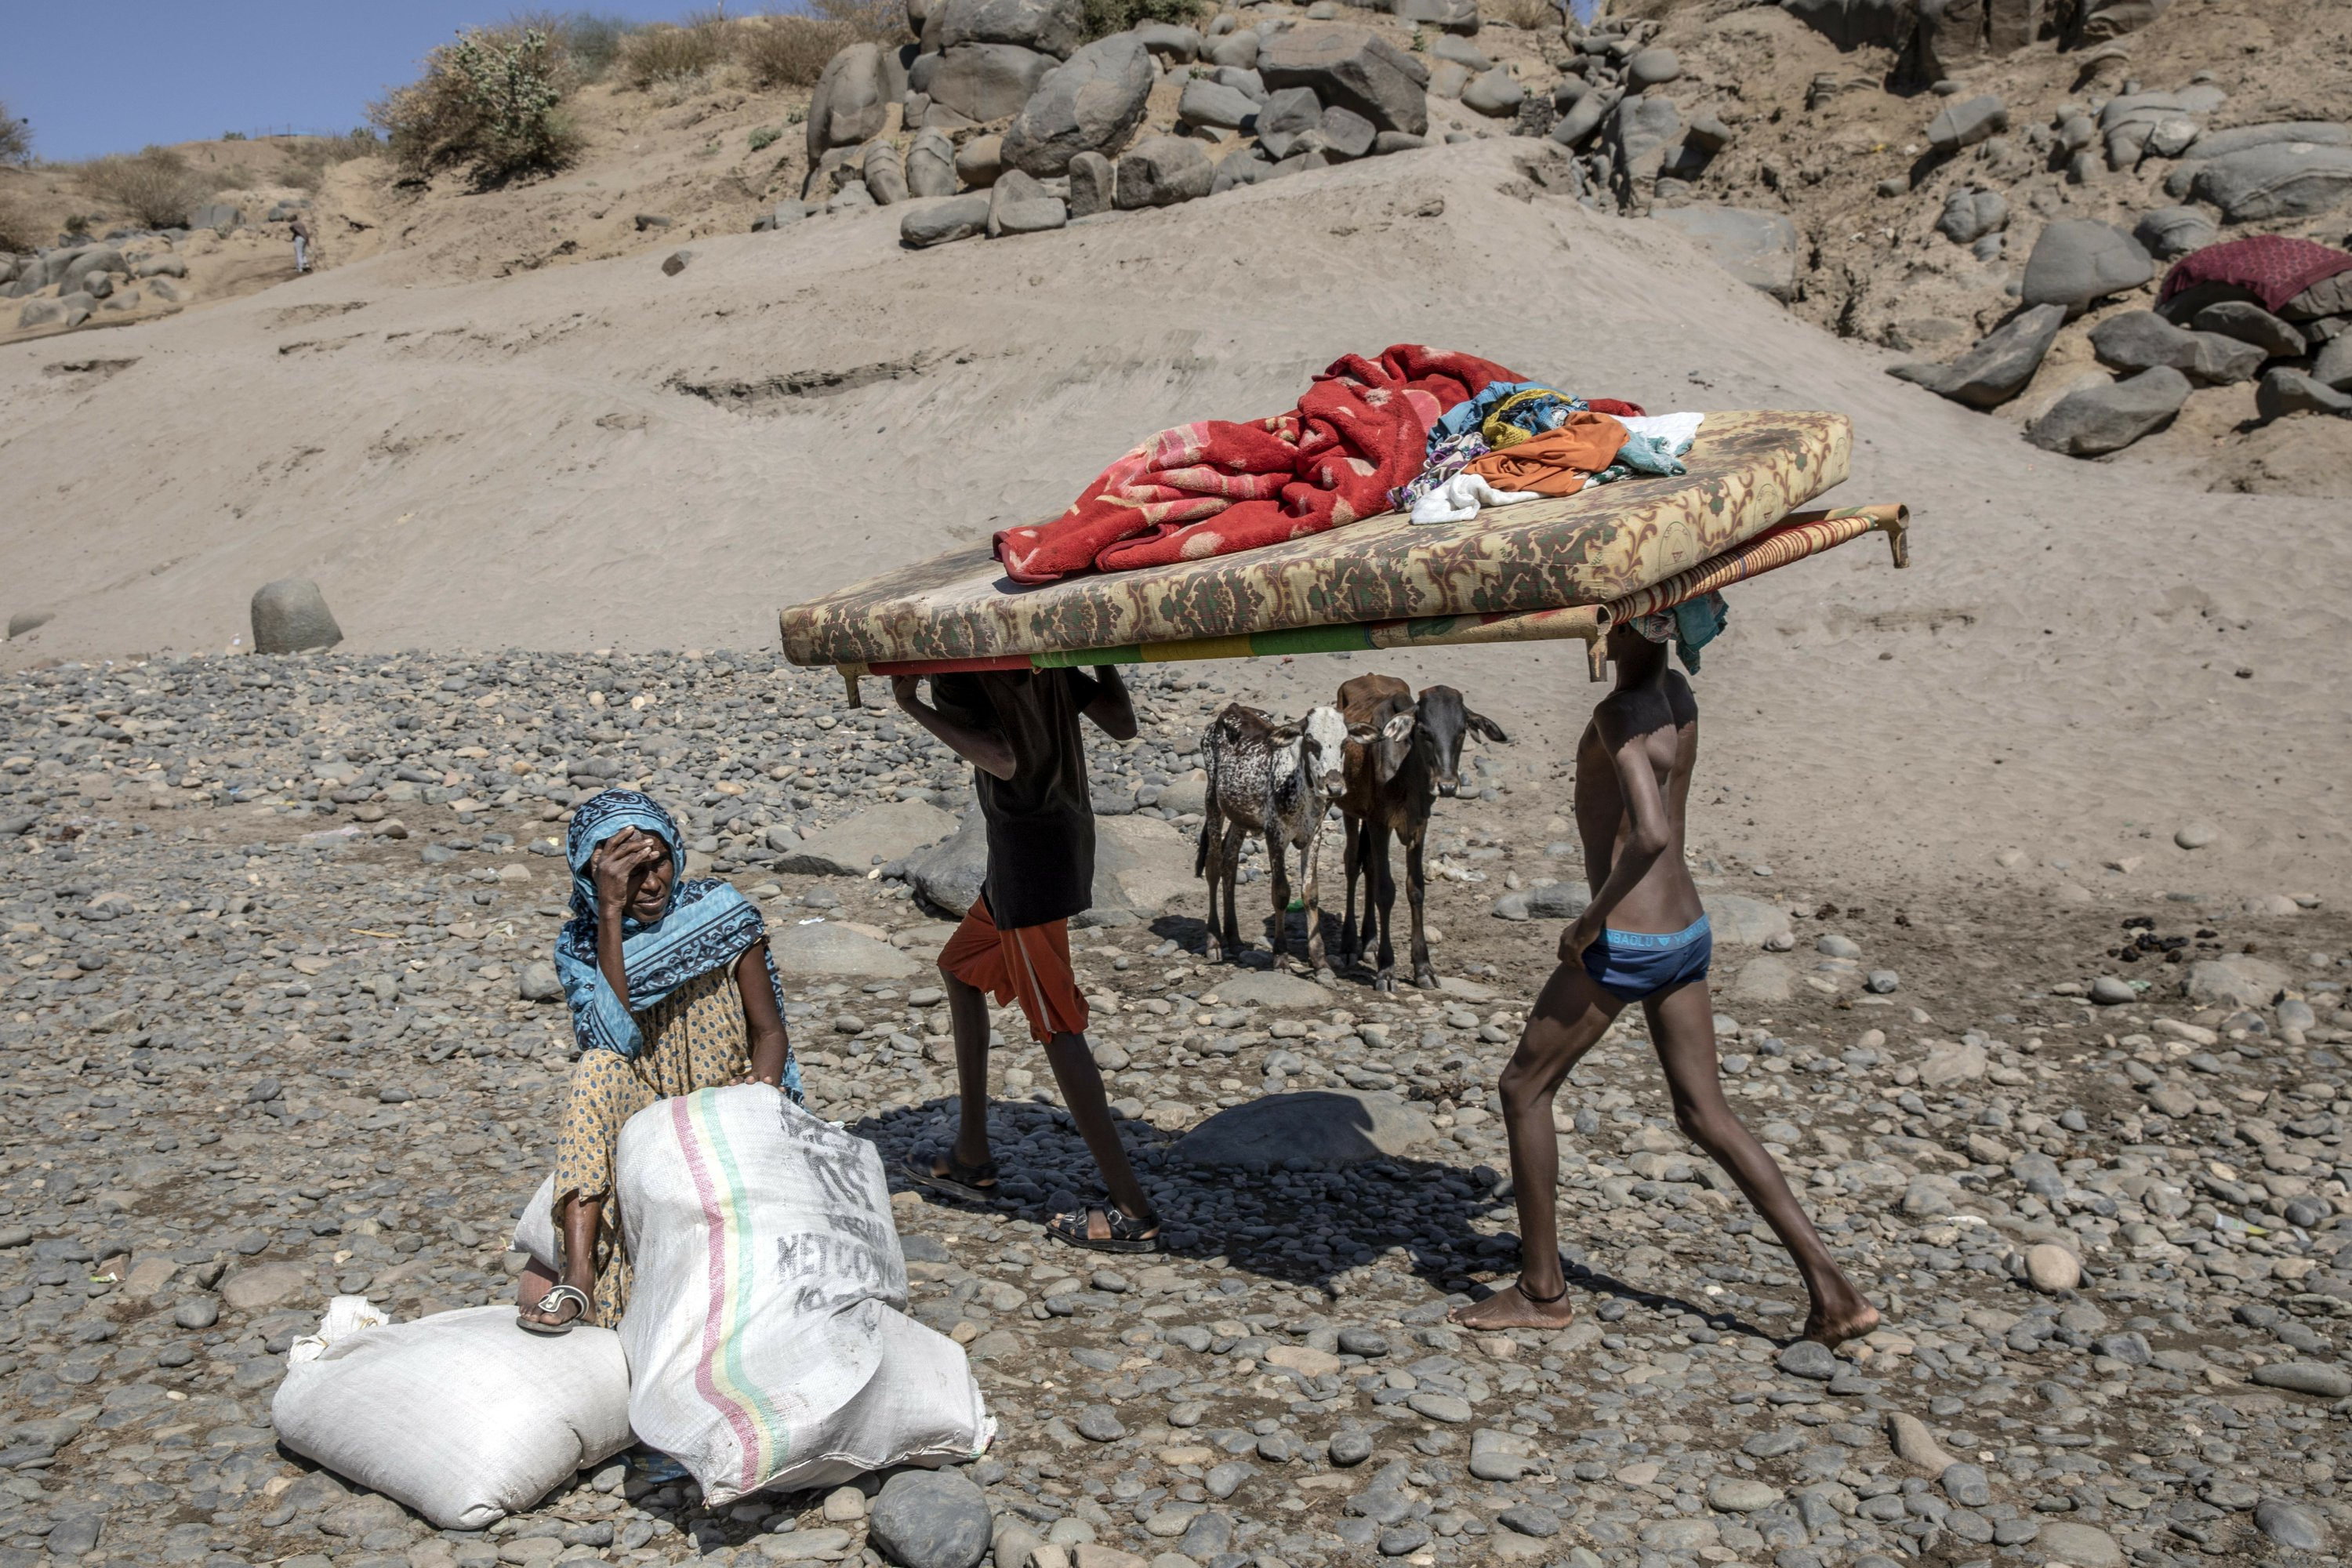 UN, Ethiopia sign deal for aid access to embattled Tigray